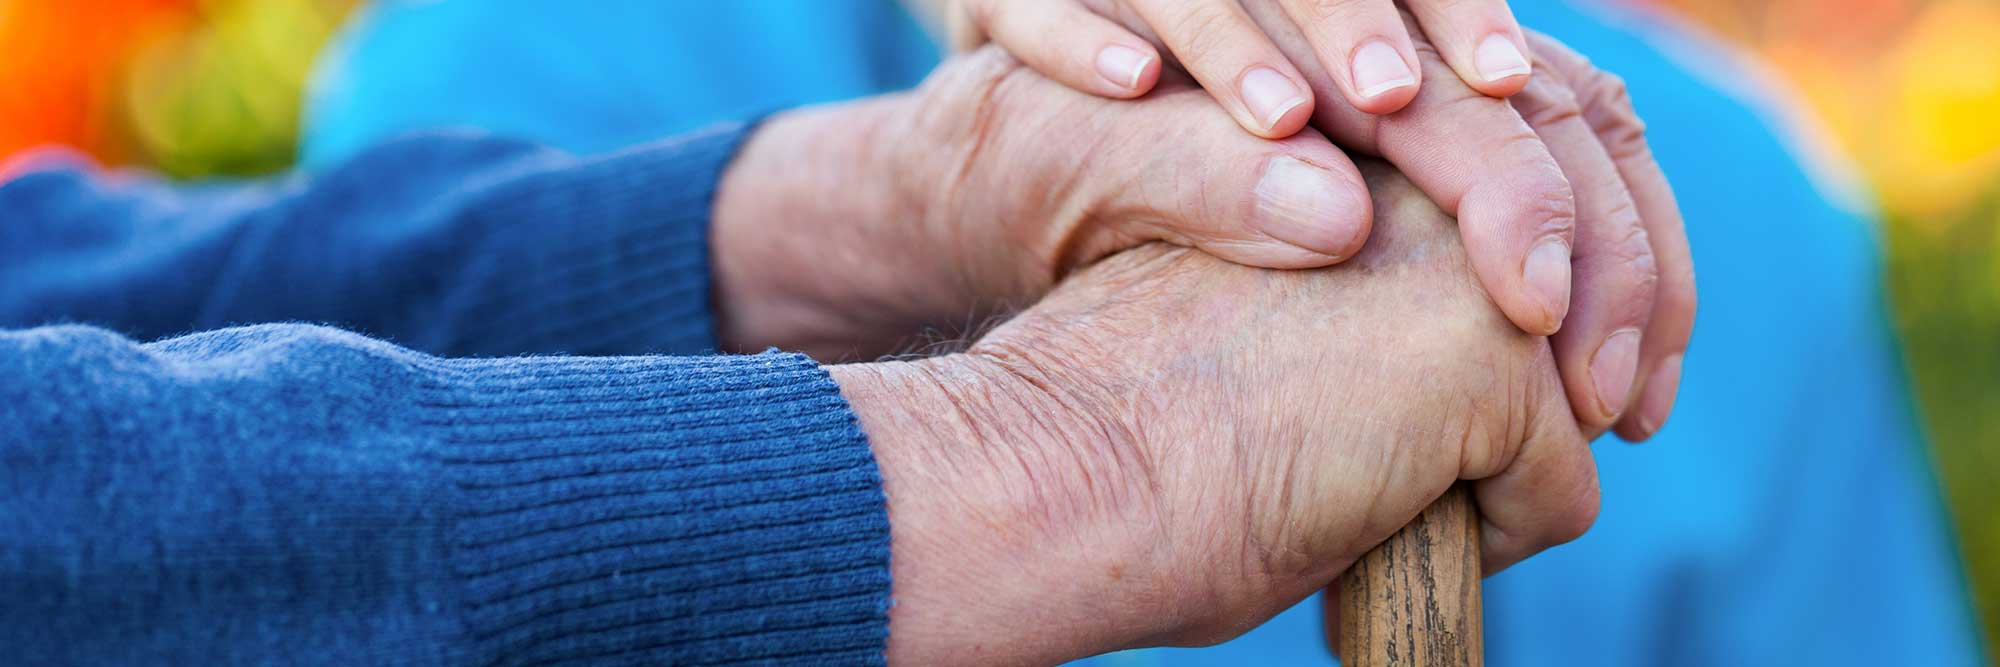 banner-health-sciences-applied-gerontology An older adult man's hands rest on the top of a wooden cane, while a young caregiver's hand gently rests atop of his hands.